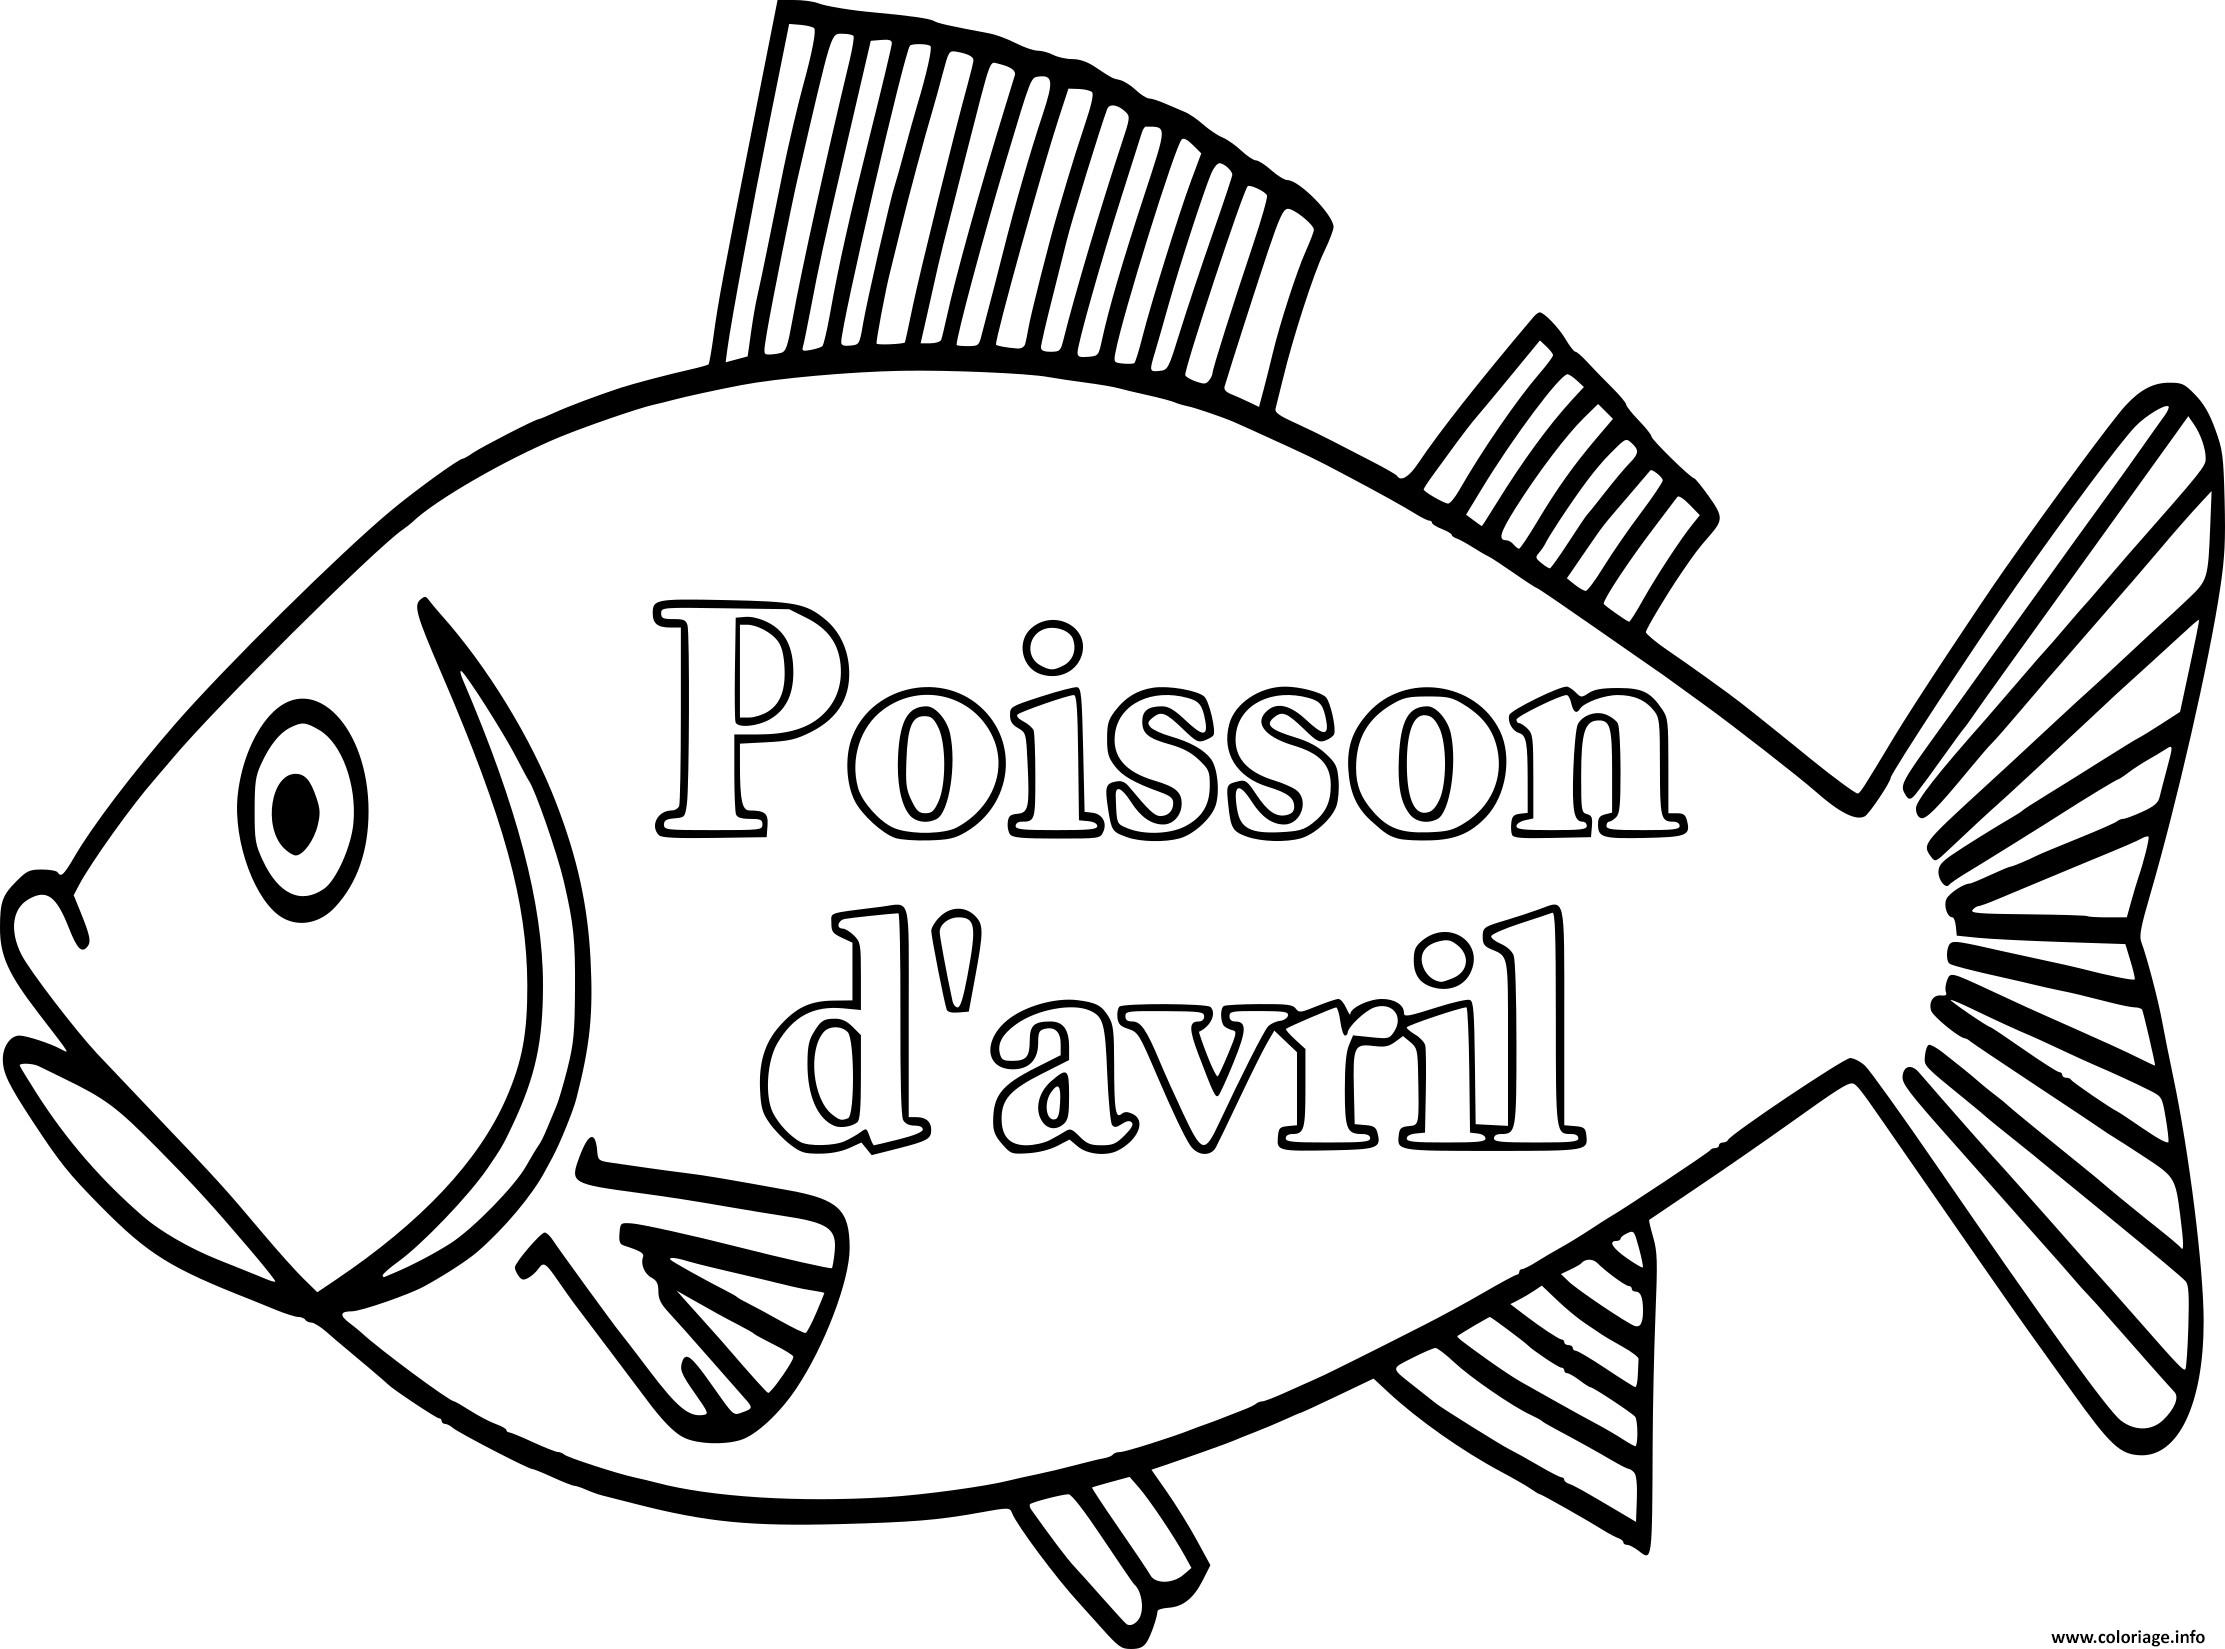 Coloriage grand poisson davril - Grand dessin a colorier ...